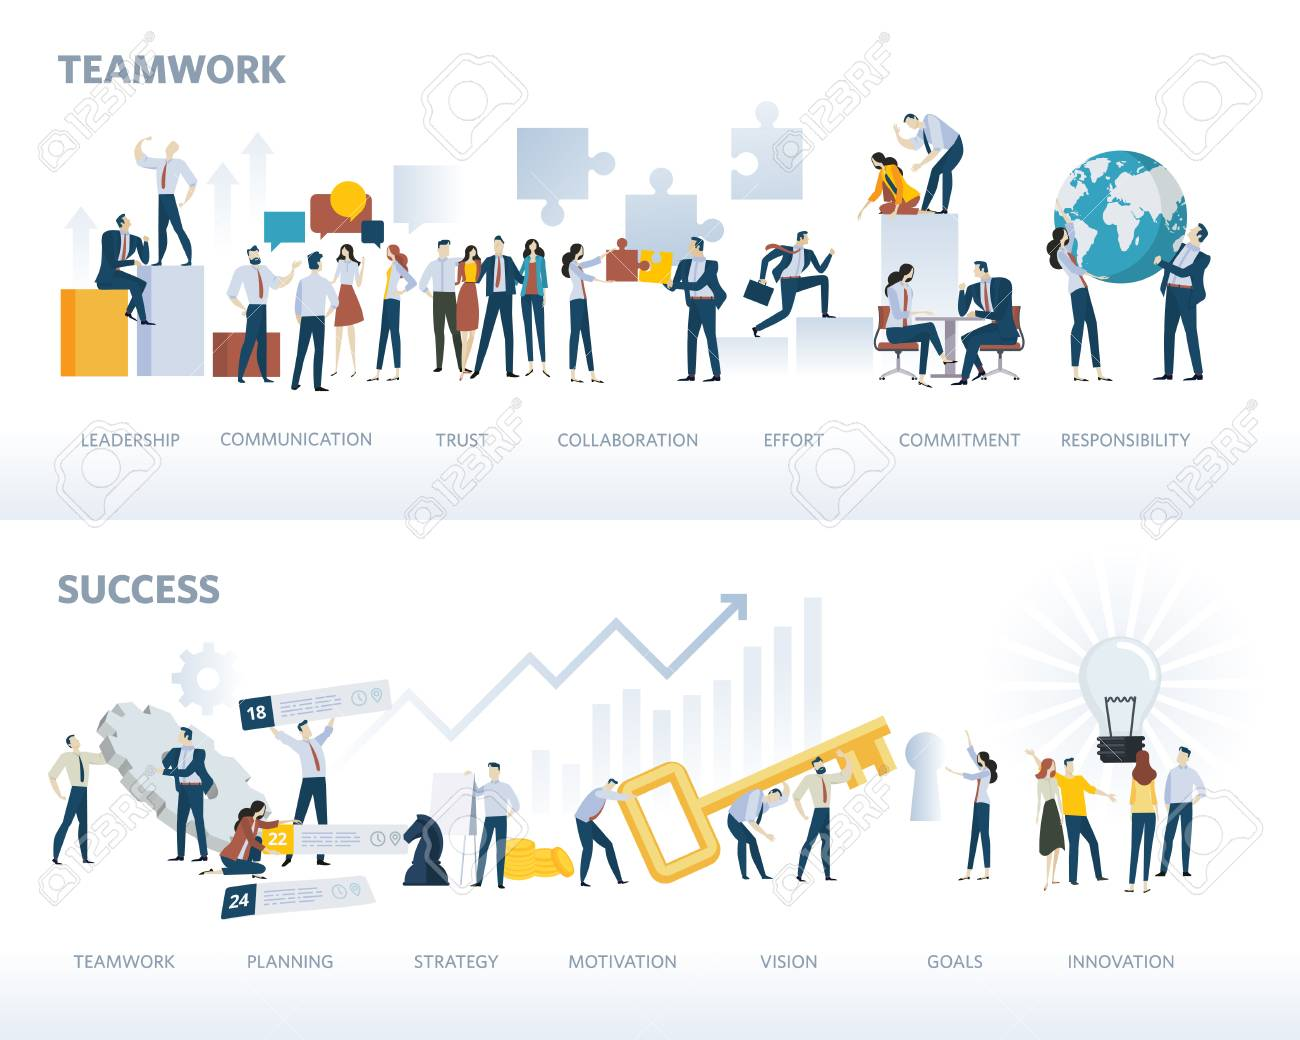 Set of flat design web banners of teamwork and success, isolated on white. Vector illustration concepts for business workflow and success, project management, team building. - 96444519